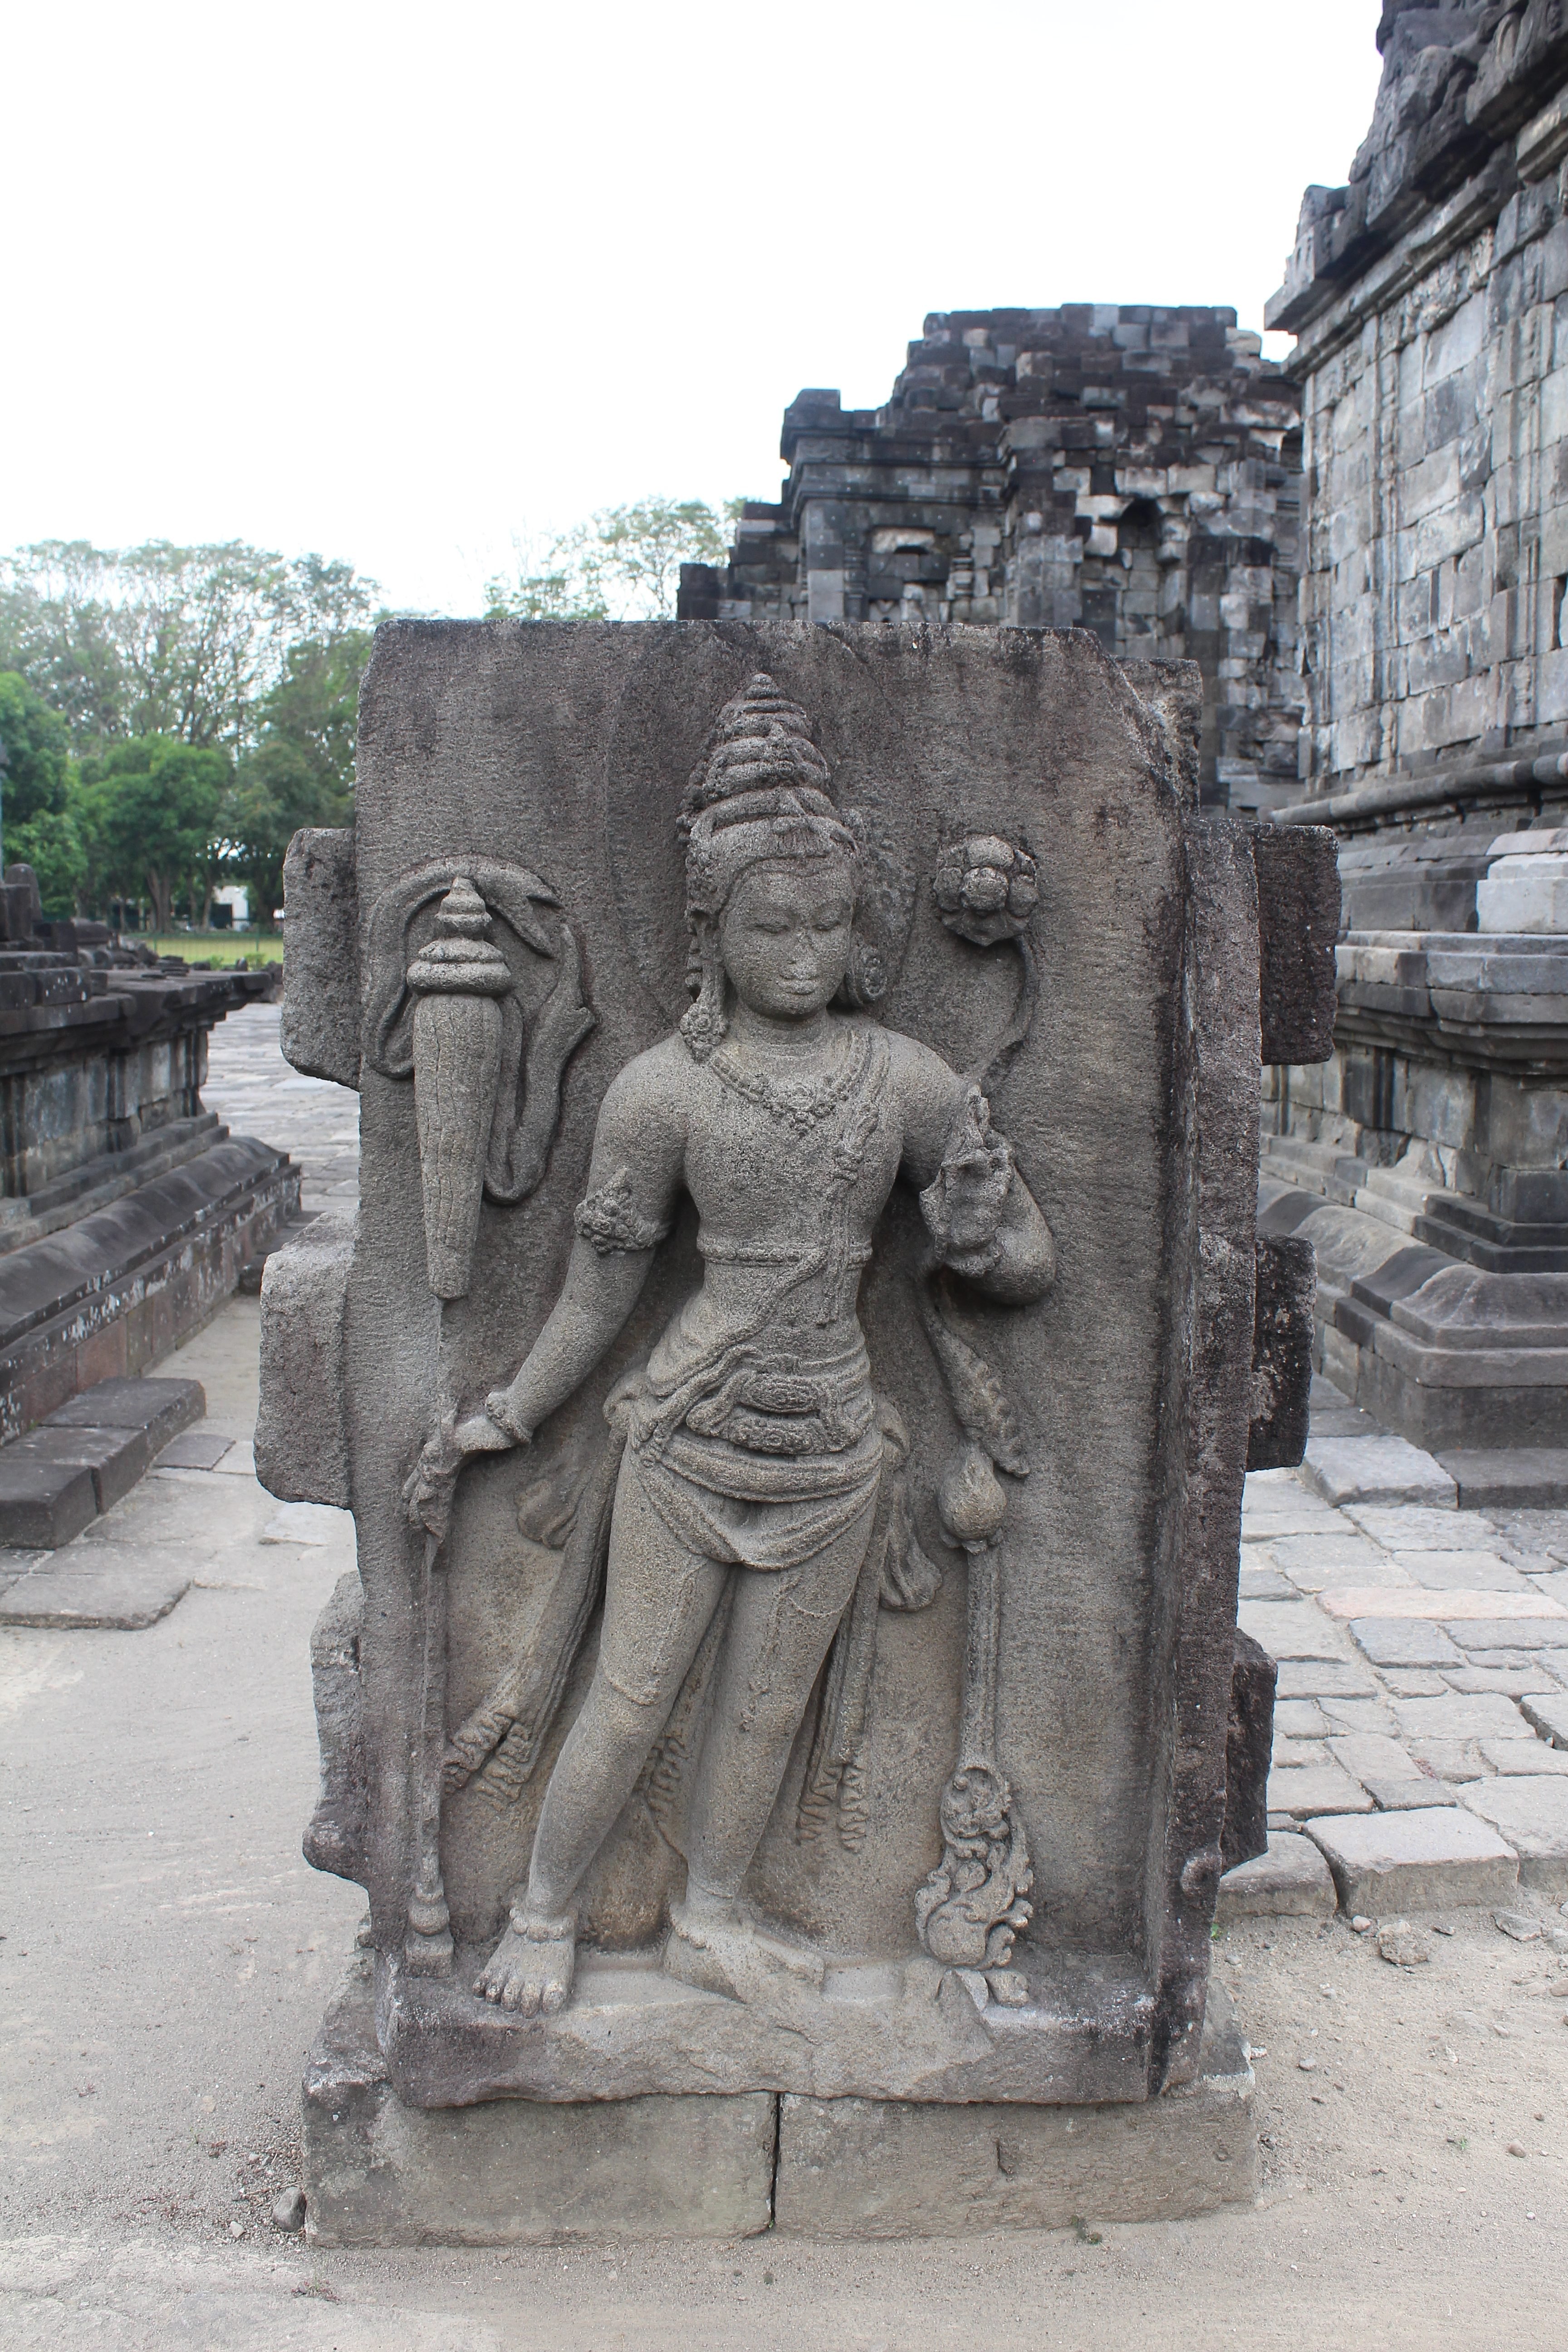 Stone slab with Buddhist figure (Padmapani) carved in relief, in a temple courtyard